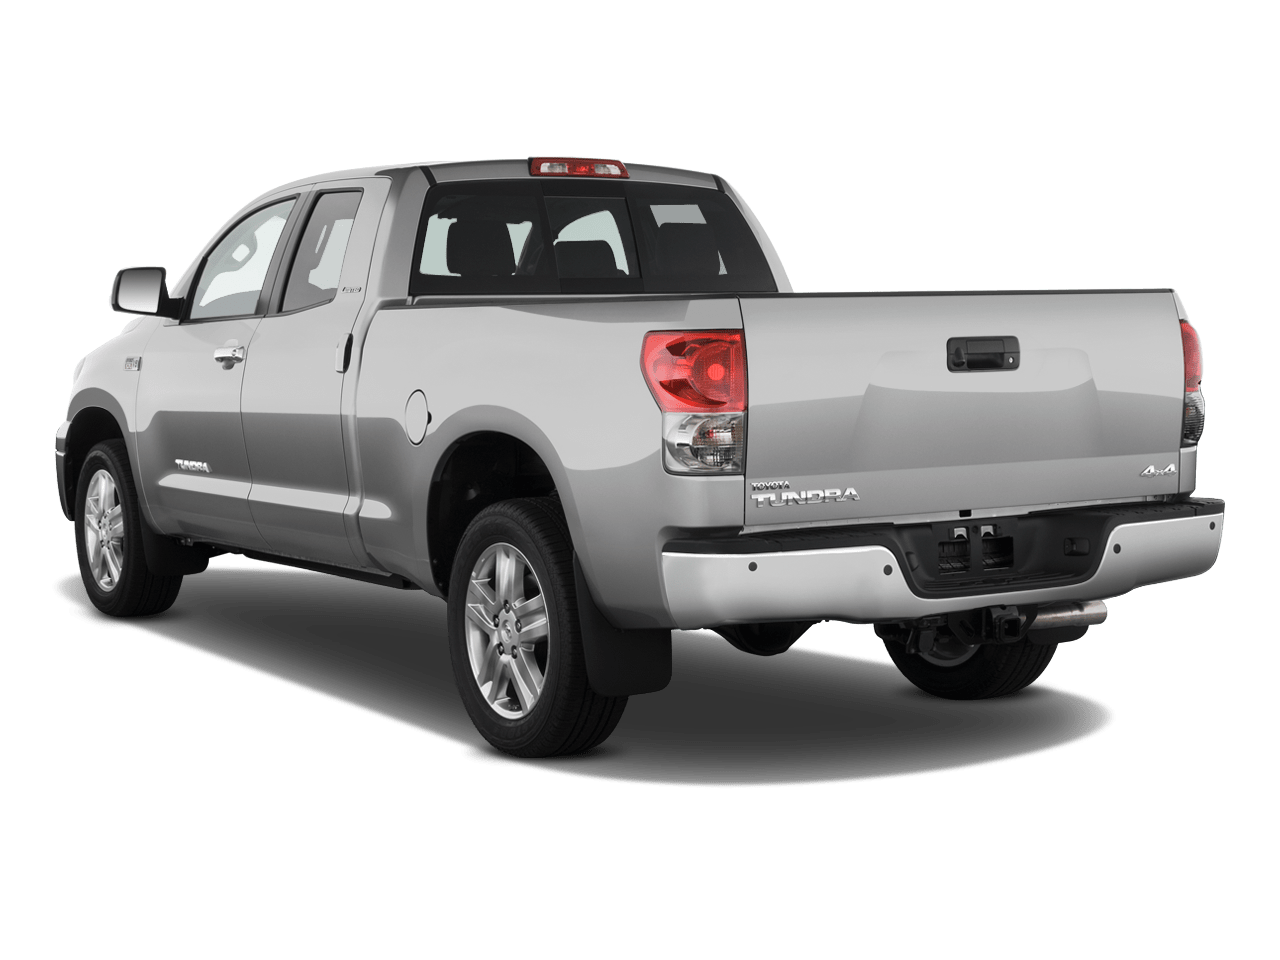 hight resolution of 2009 toyota tundra reviews and rating motor trend a f sensor toyota wiring diagram wiring diagram tundra